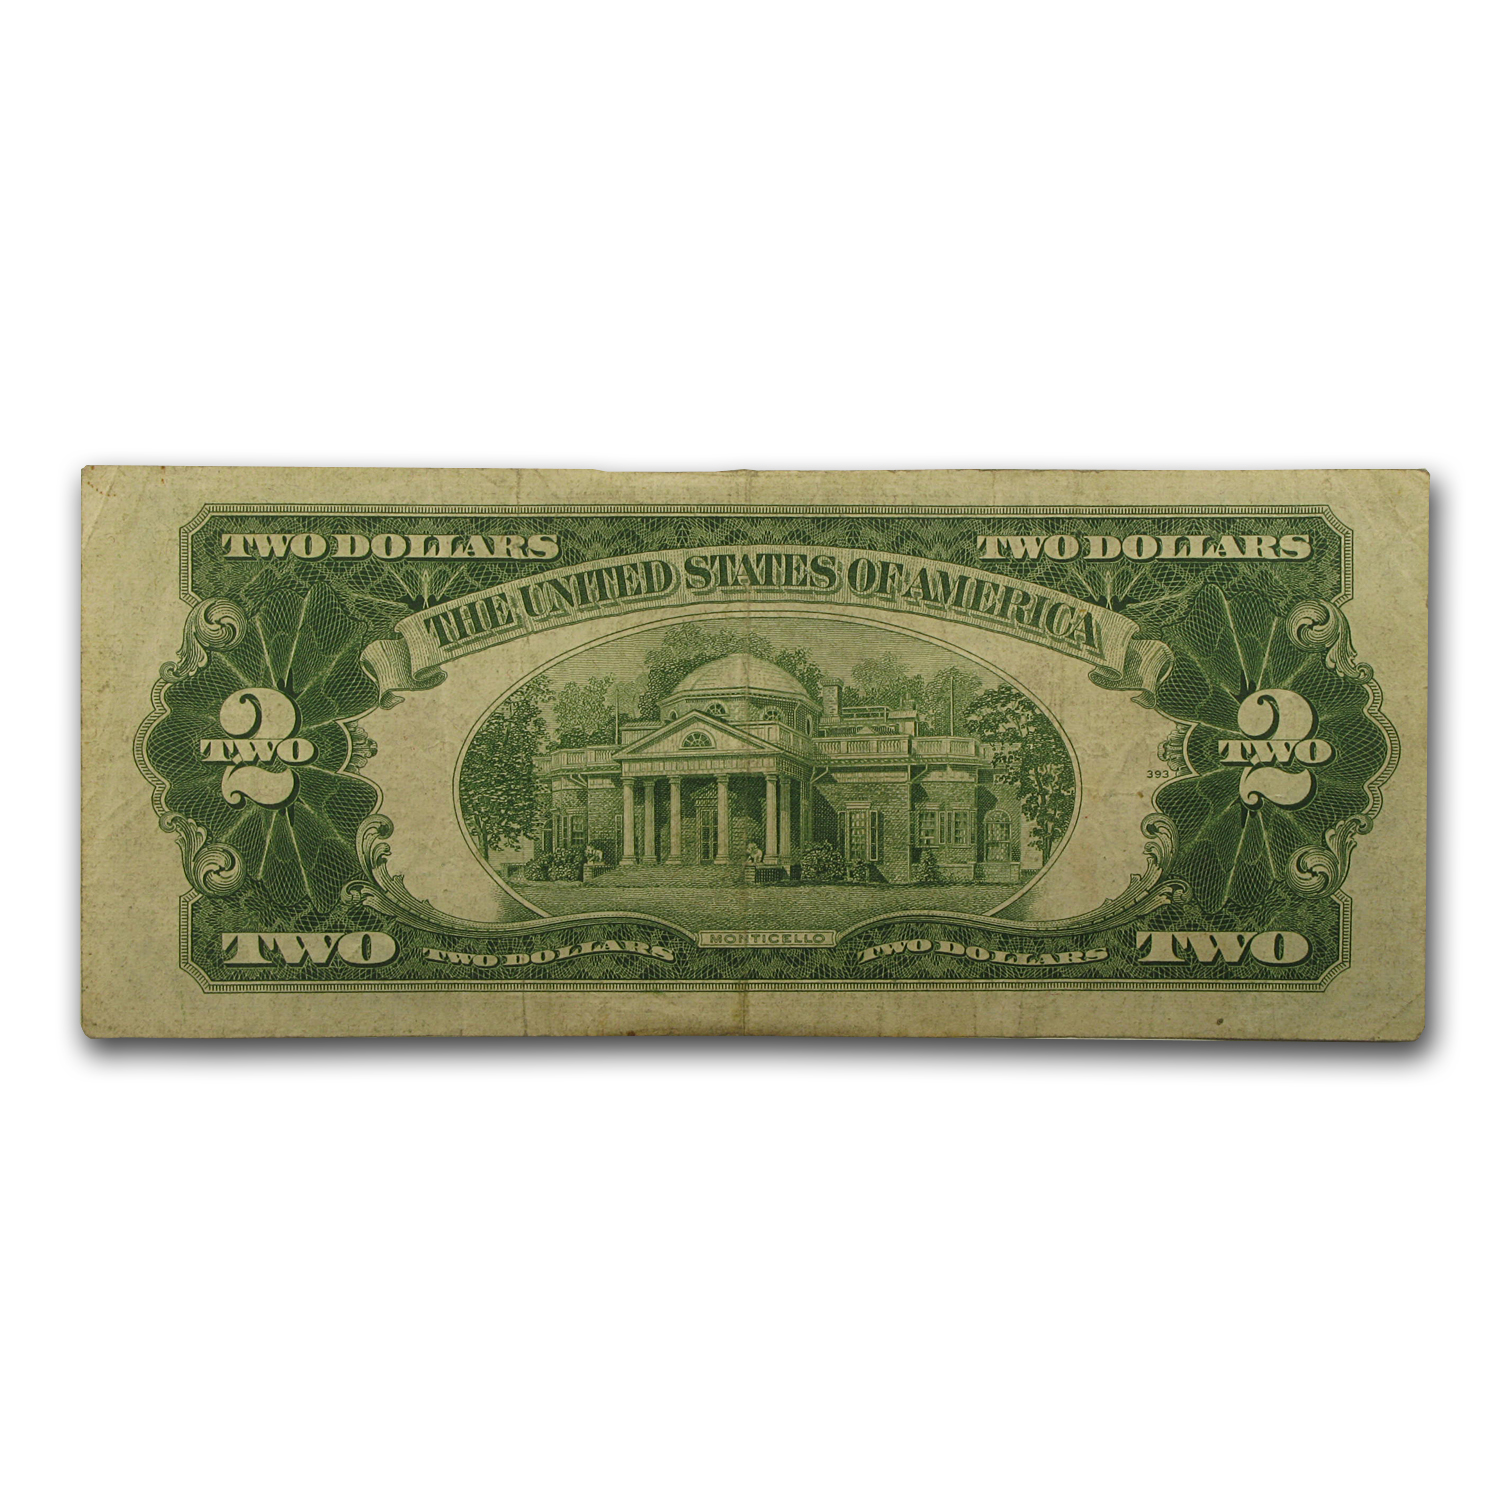 1953s * $2.00 (RED SEALS) (Very Good)-(Very Fine) - Star Note